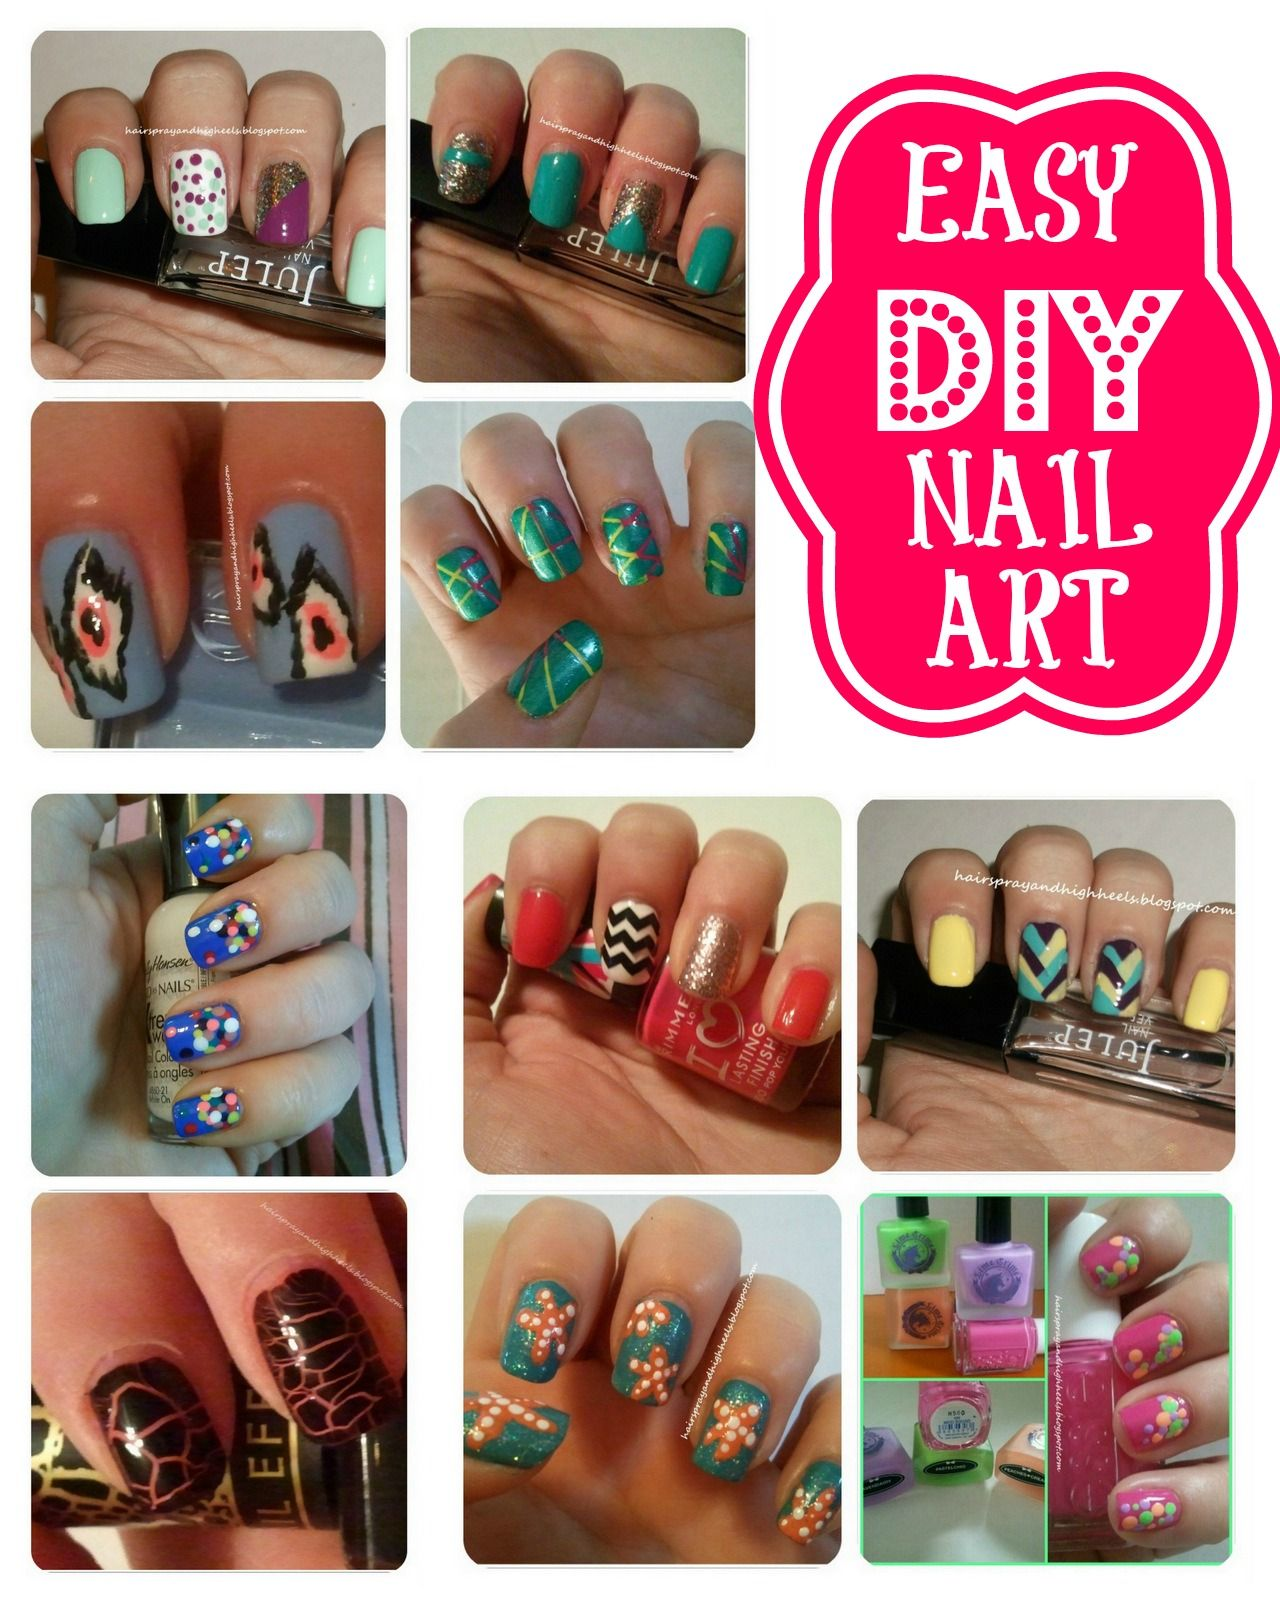 Diy gel like nails easy diy nail art easy and hairspray diy nail art archives hairspray and highheels solutioingenieria Gallery